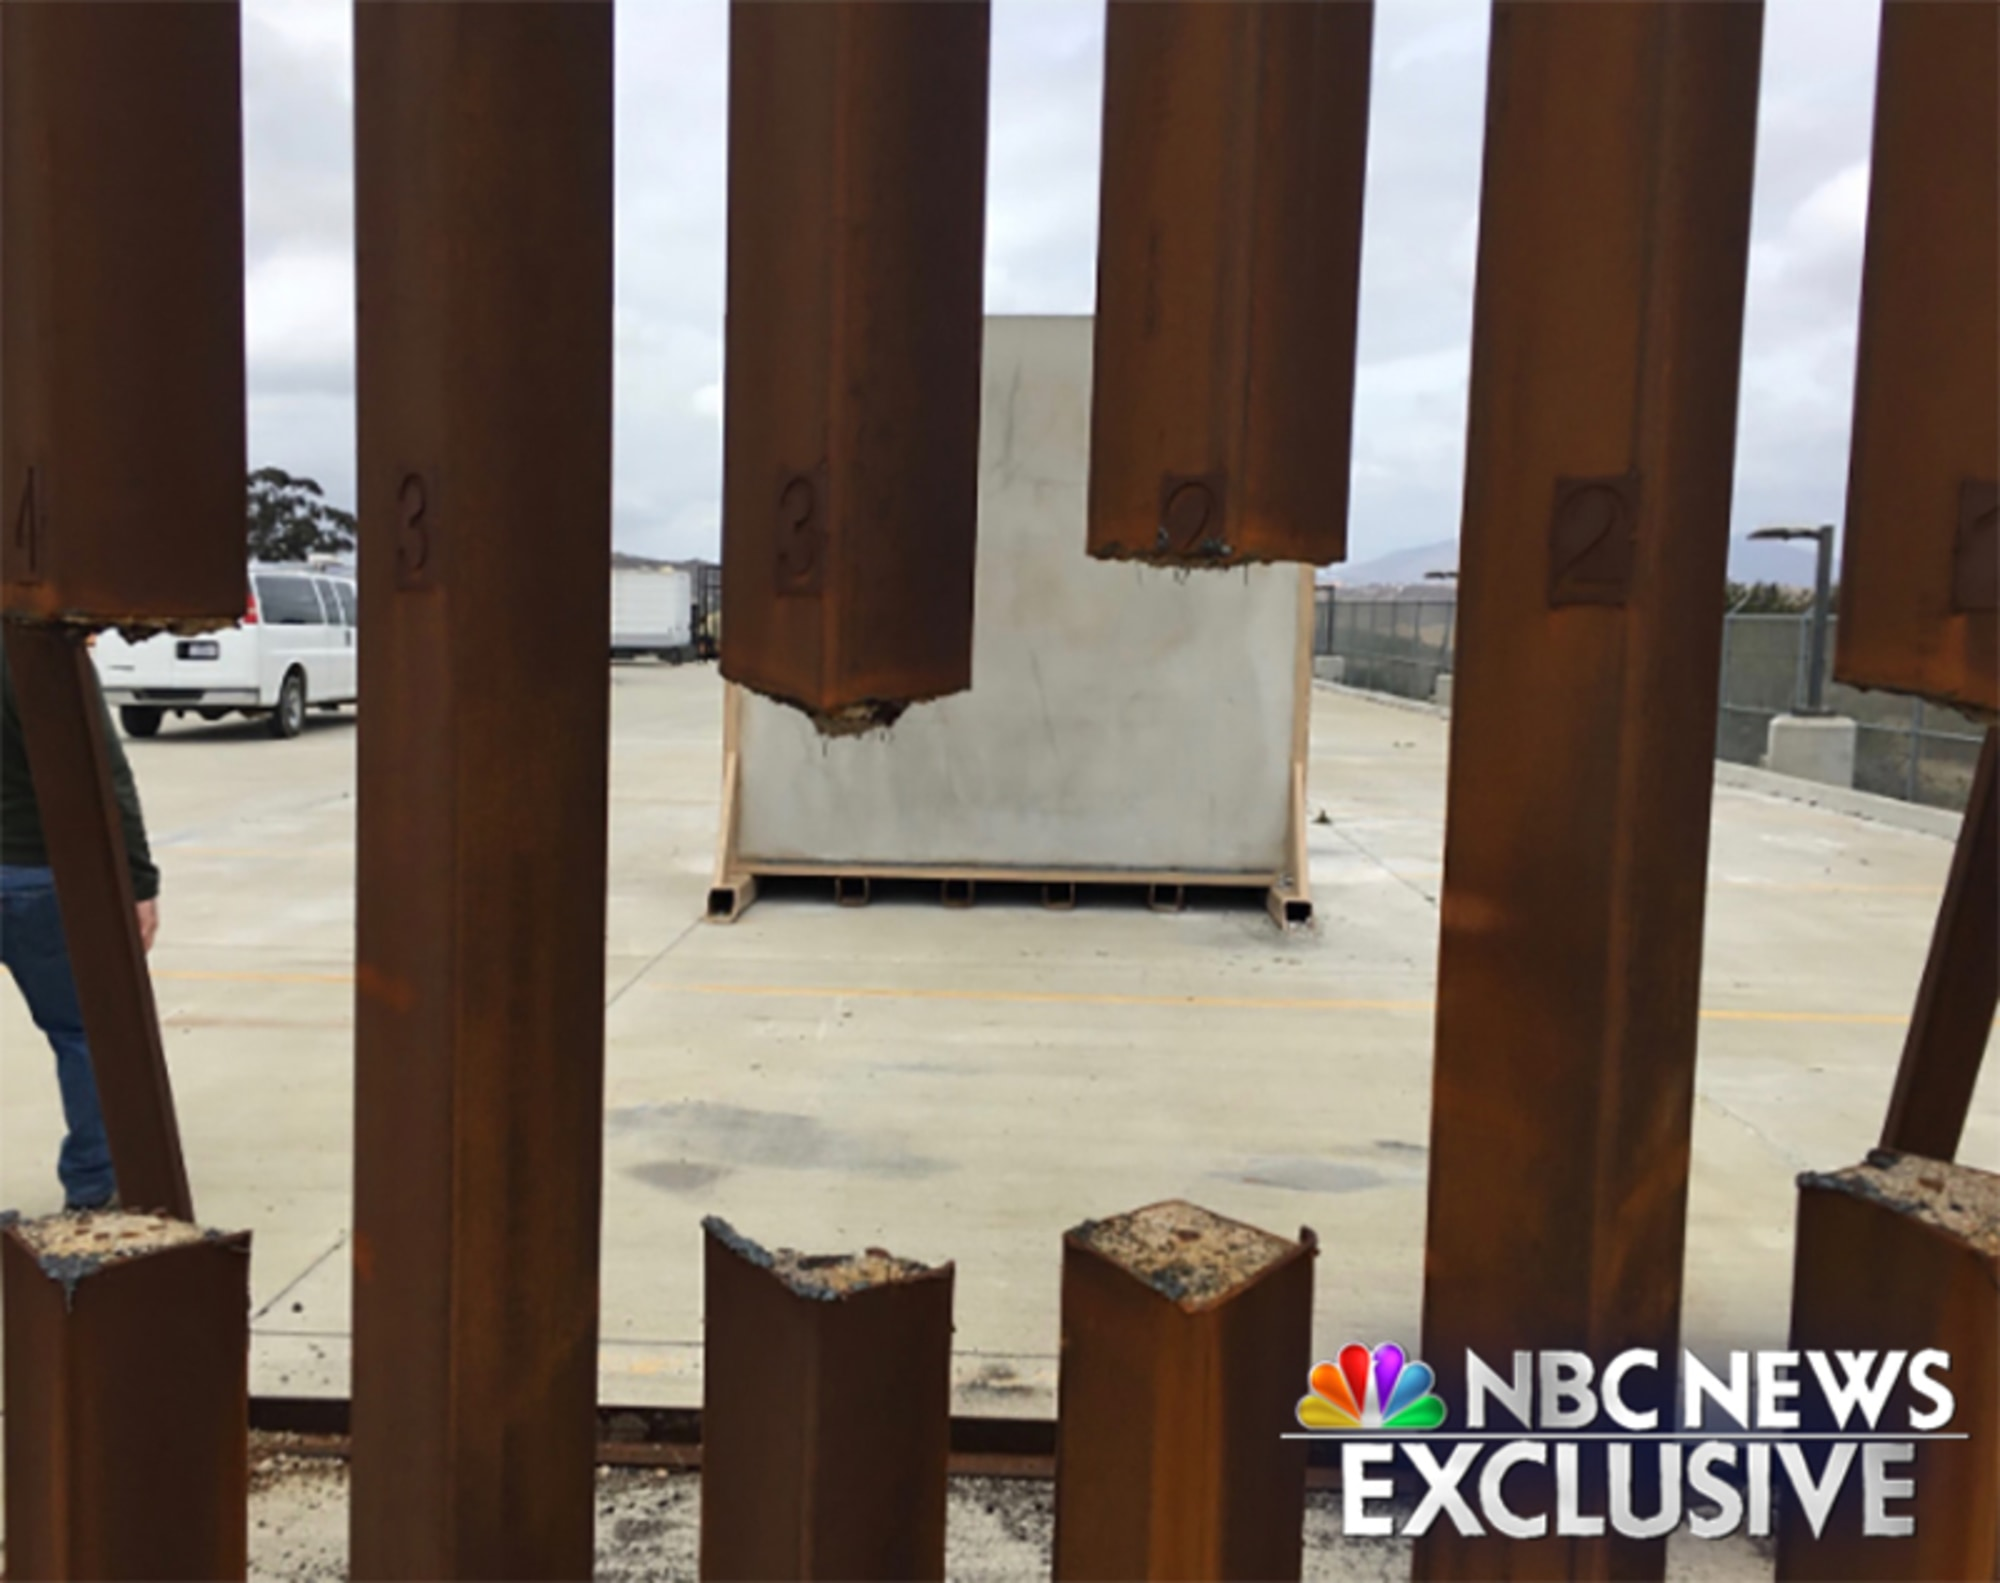 190110-border-wall-steel-prototype-nbc-n